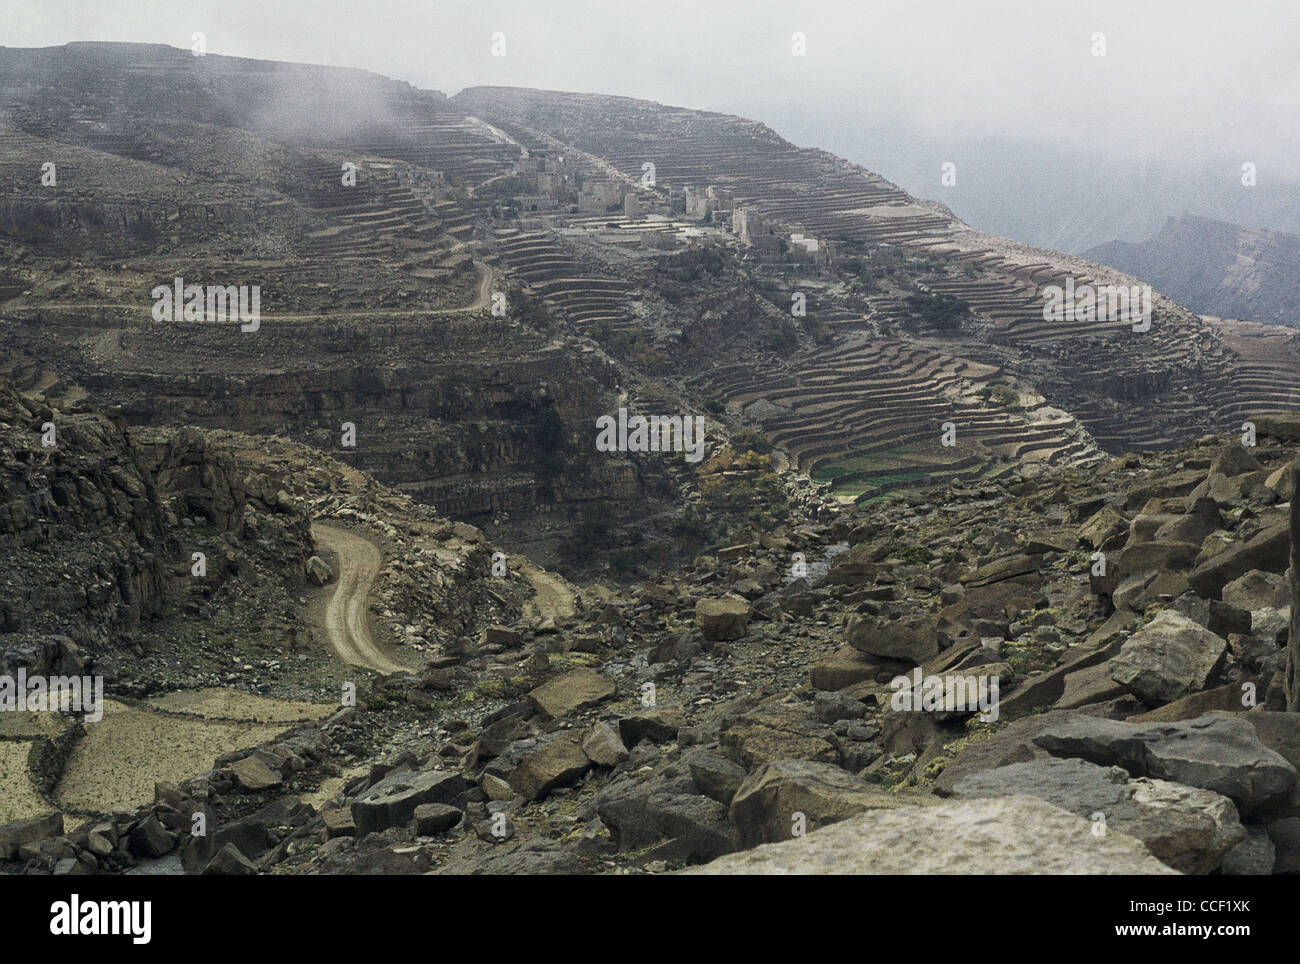 Terraced farmland and a distant view of a village in the mountains of Hajjah Governorate, Yemen - Stock Image